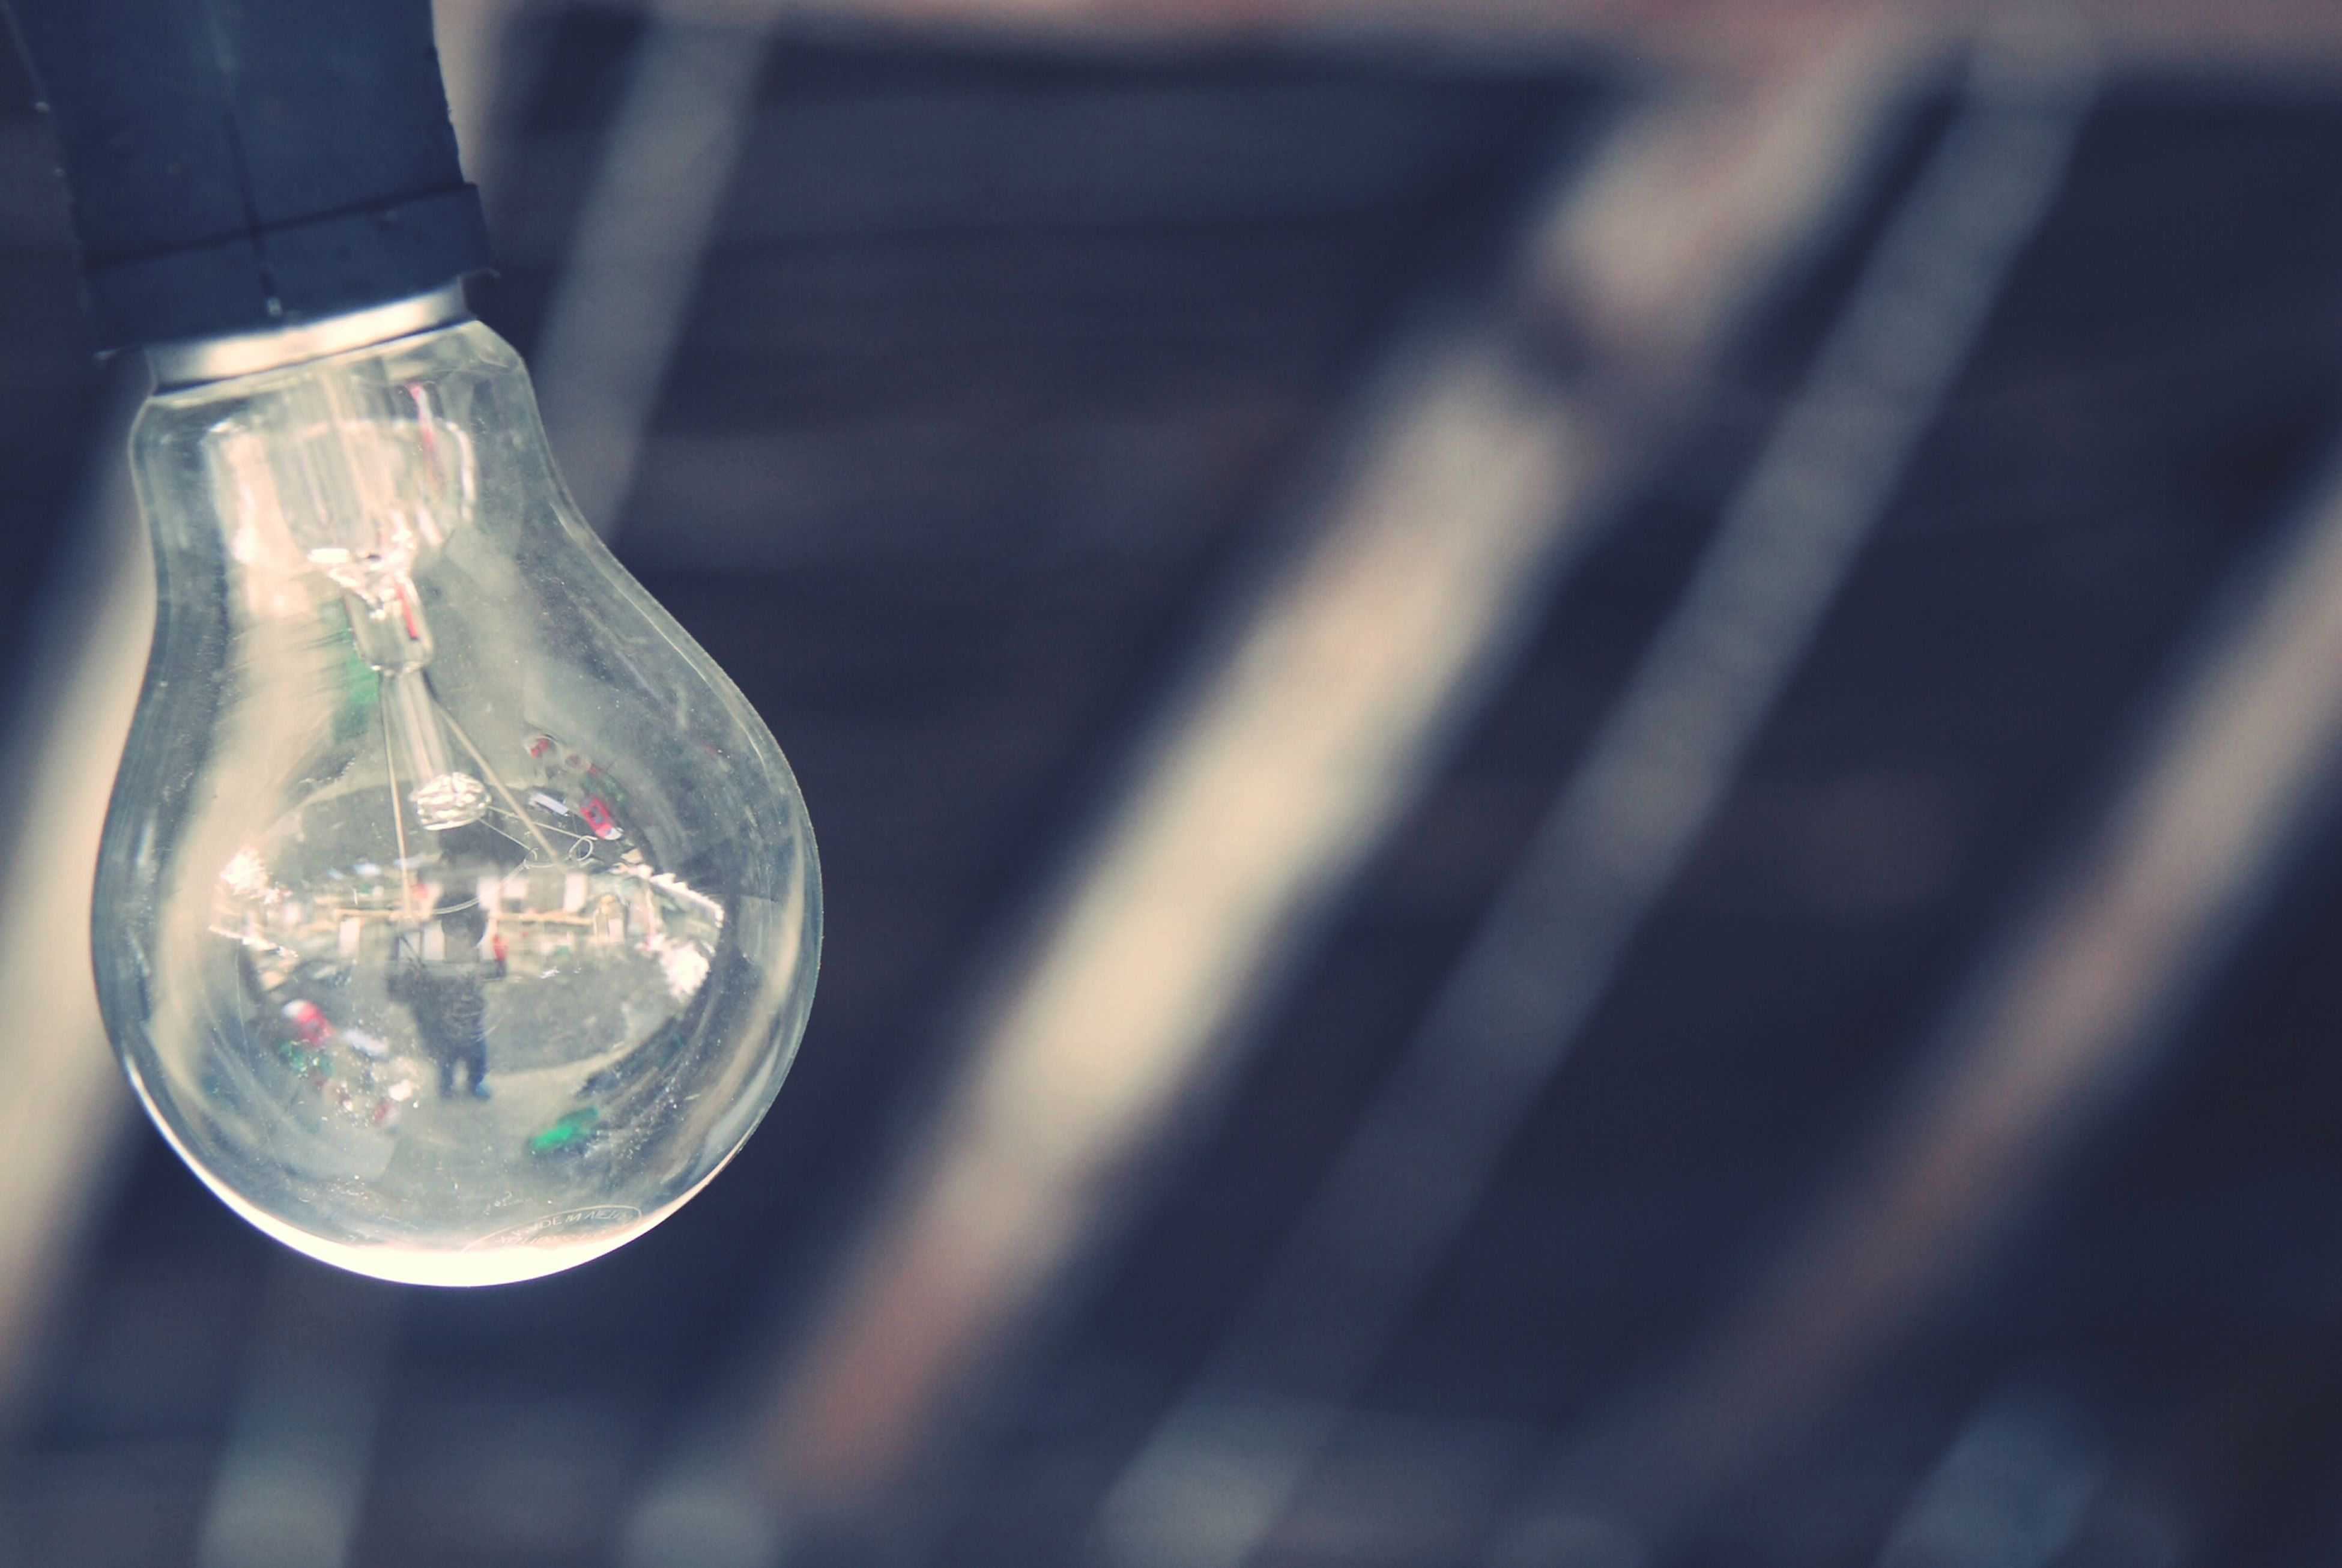 indoors, focus on foreground, close-up, glass - material, lighting equipment, transparent, illuminated, light bulb, hanging, selective focus, shiny, reflection, no people, decoration, still life, metal, glass, fragility, electricity, electric light